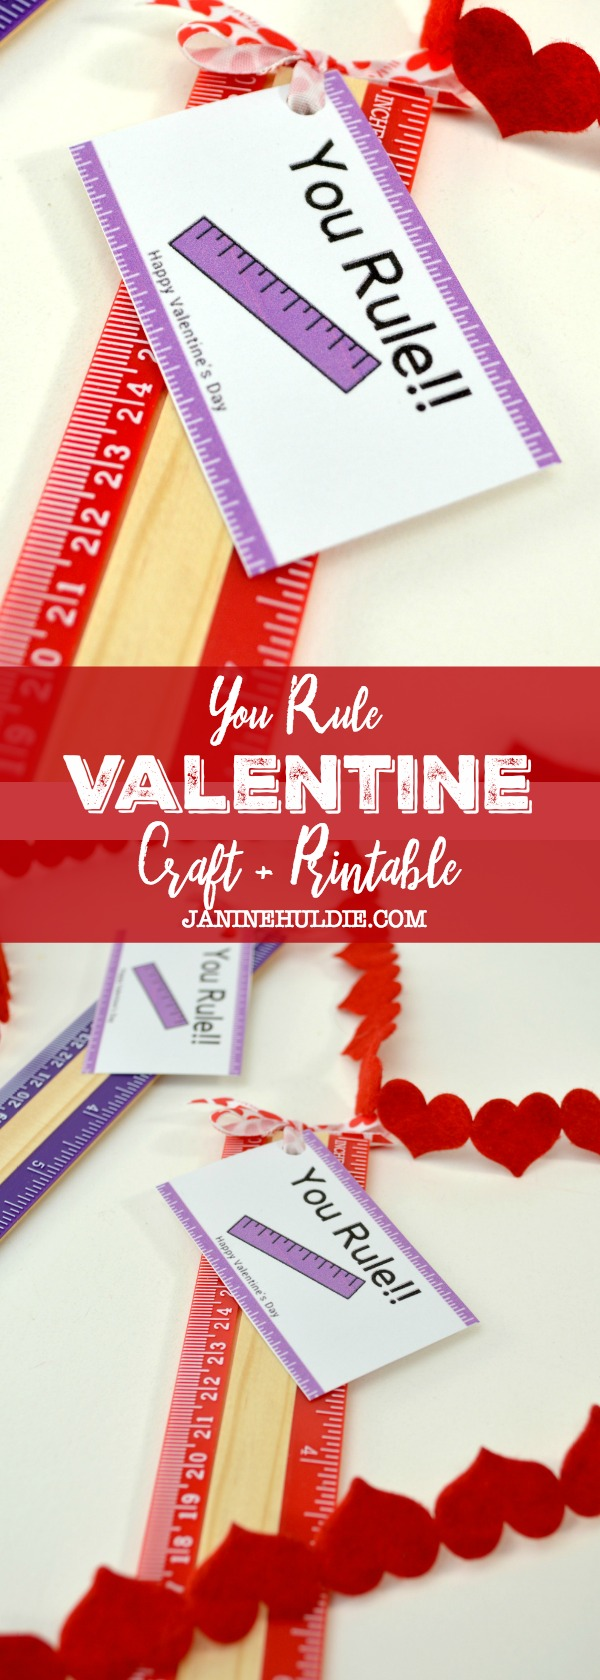 You Rule Valentine Craft and Printable